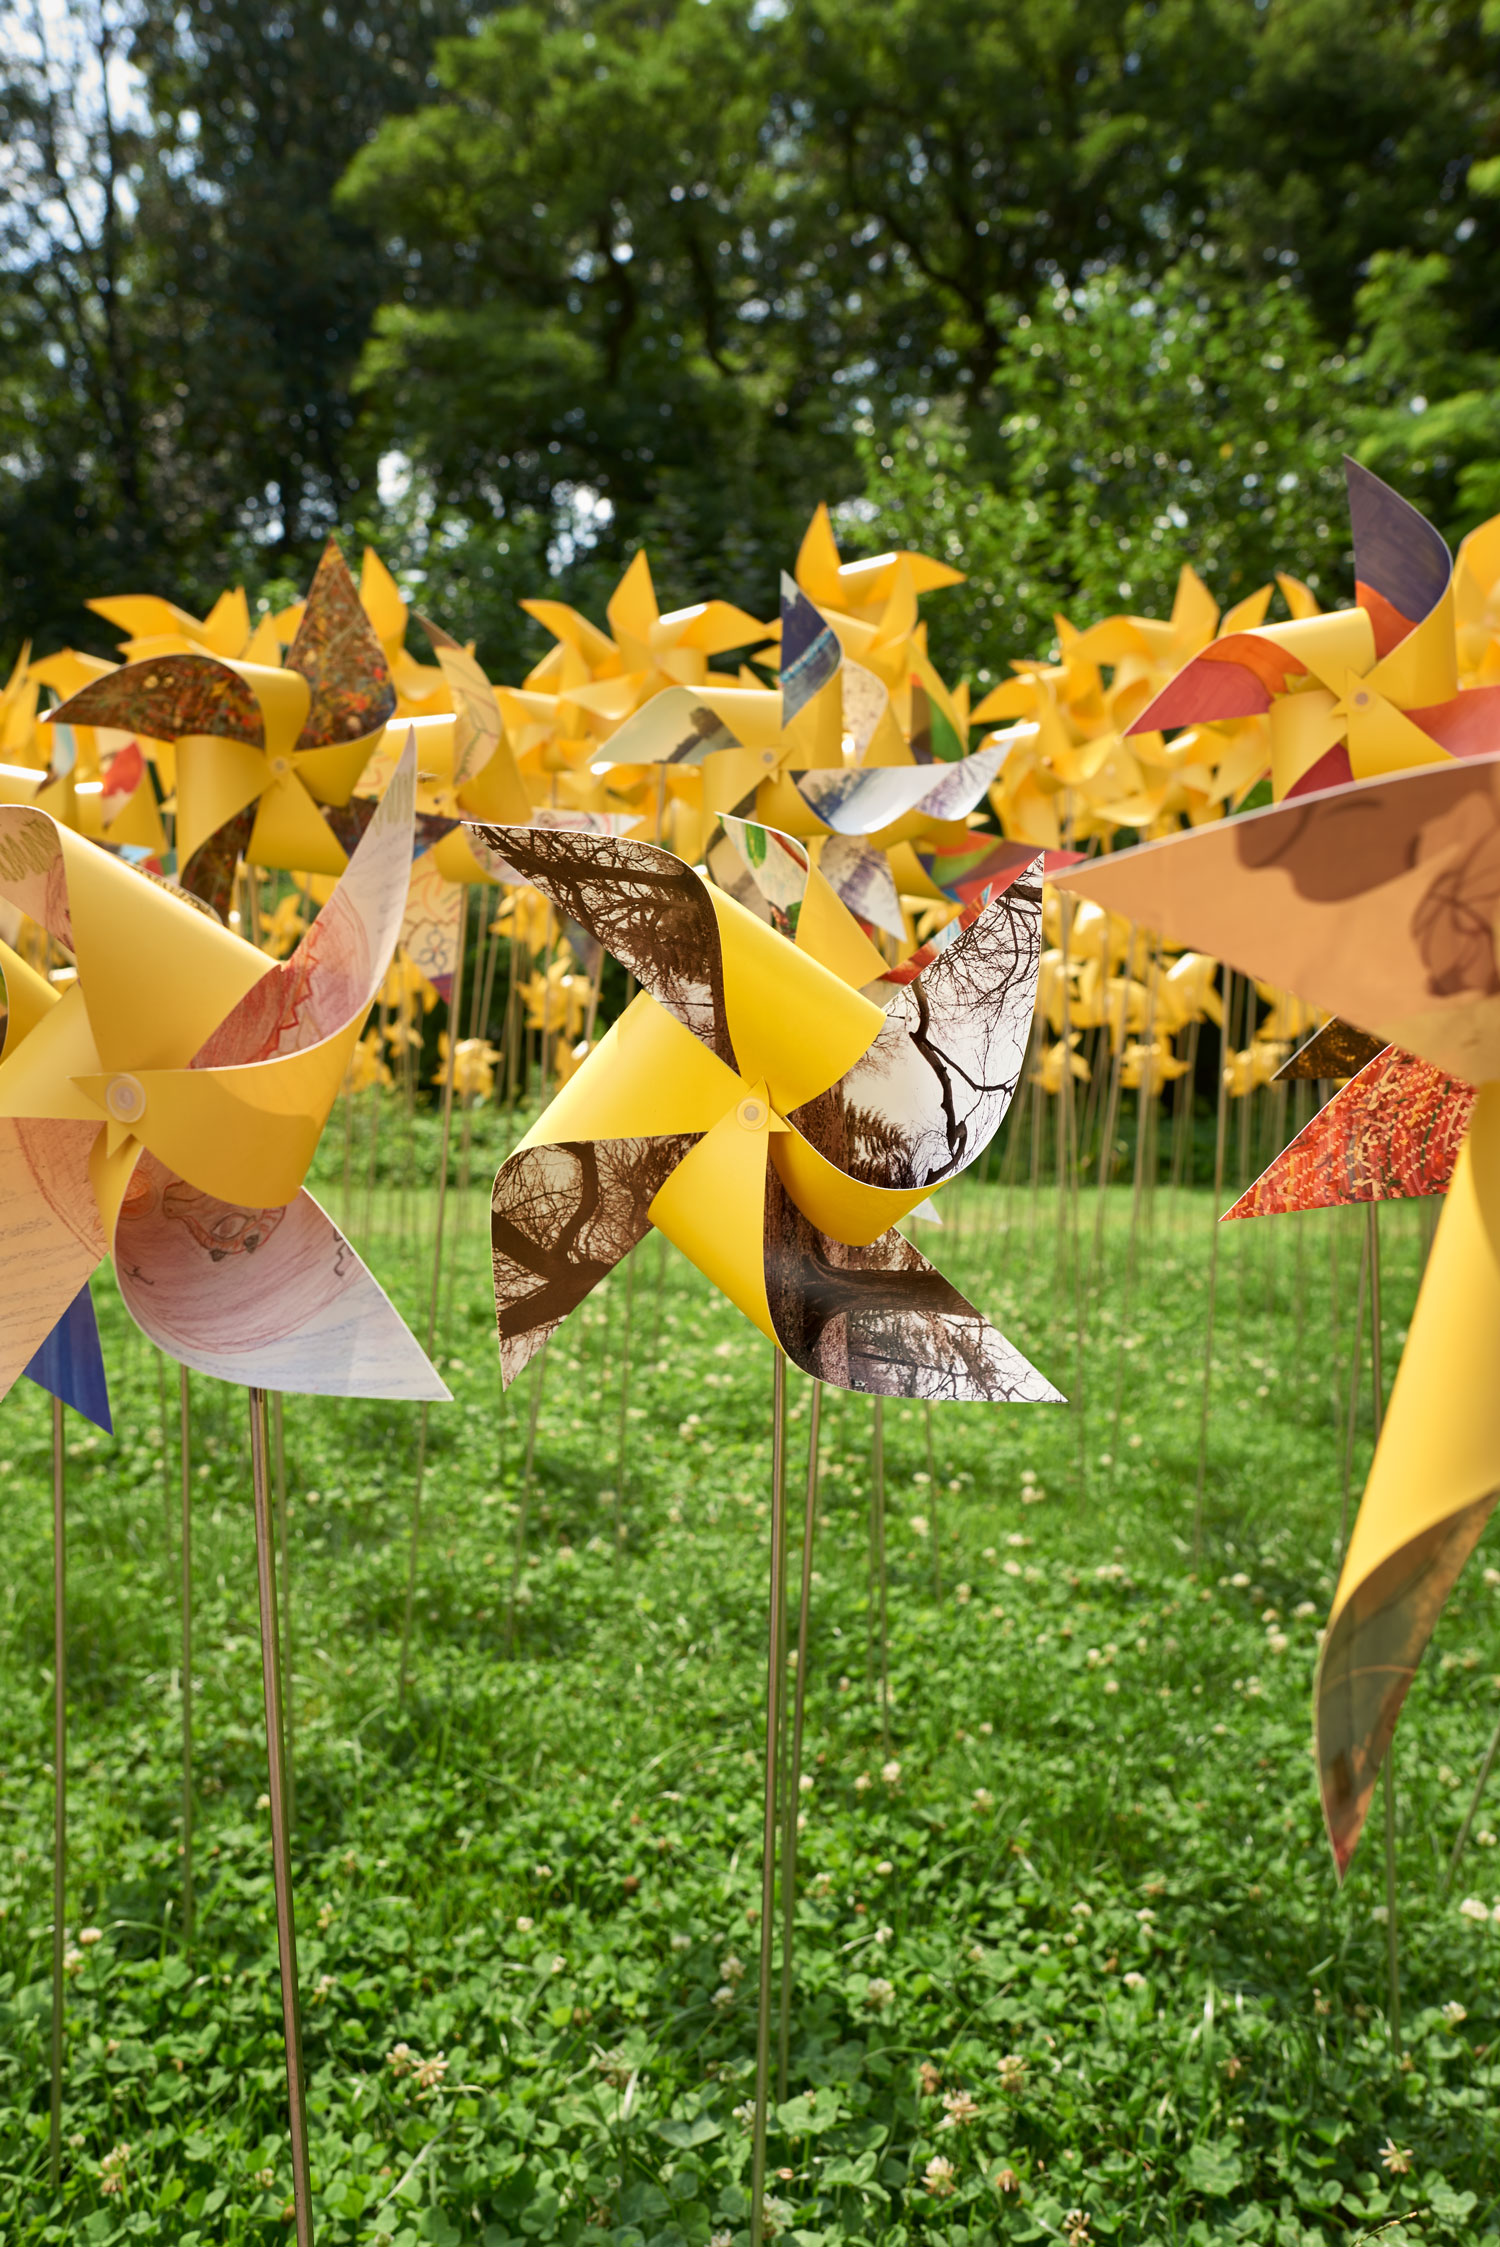 My contrabution , Spring Arboretum Reflection , folded into a pinwheel at the Connective Project in Prospect Park, Brooklyn. Image © harlan erskine